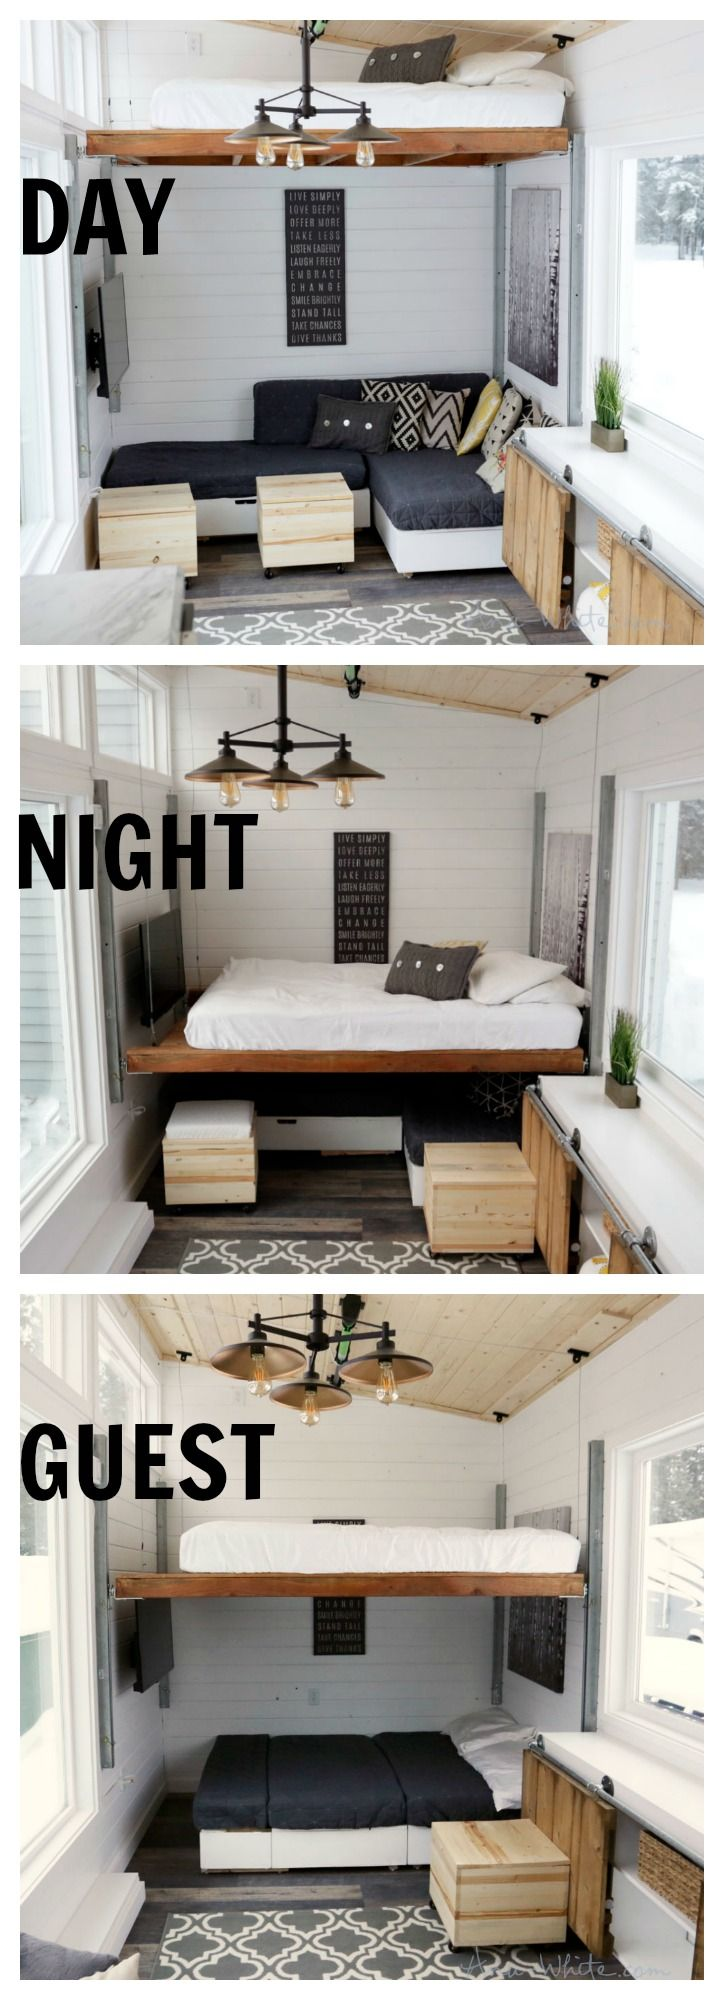 House design ideas - Open Concept Rustic Modern Tiny House Photo Tour And Sources Ana White Woodworking Projects